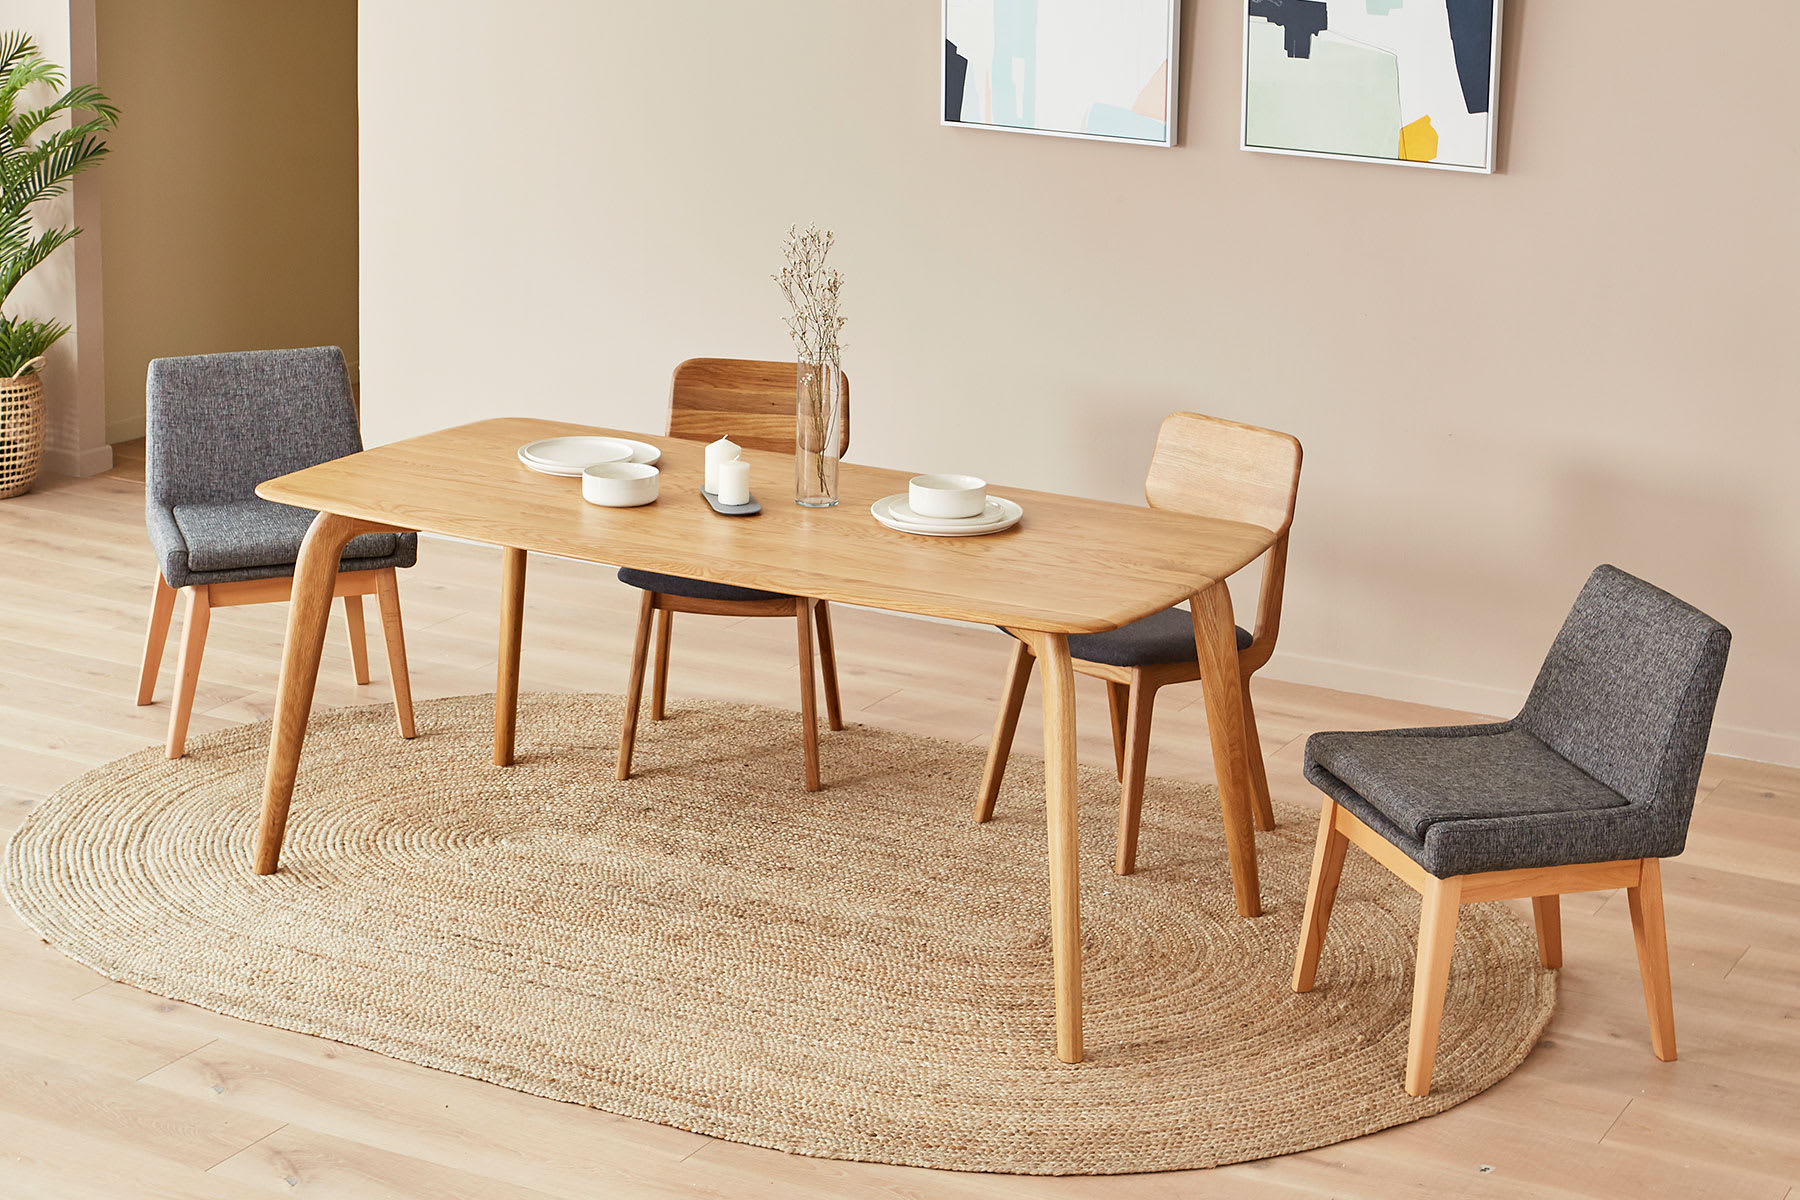 Curved rectangular dining table with chairs and plants in dining room